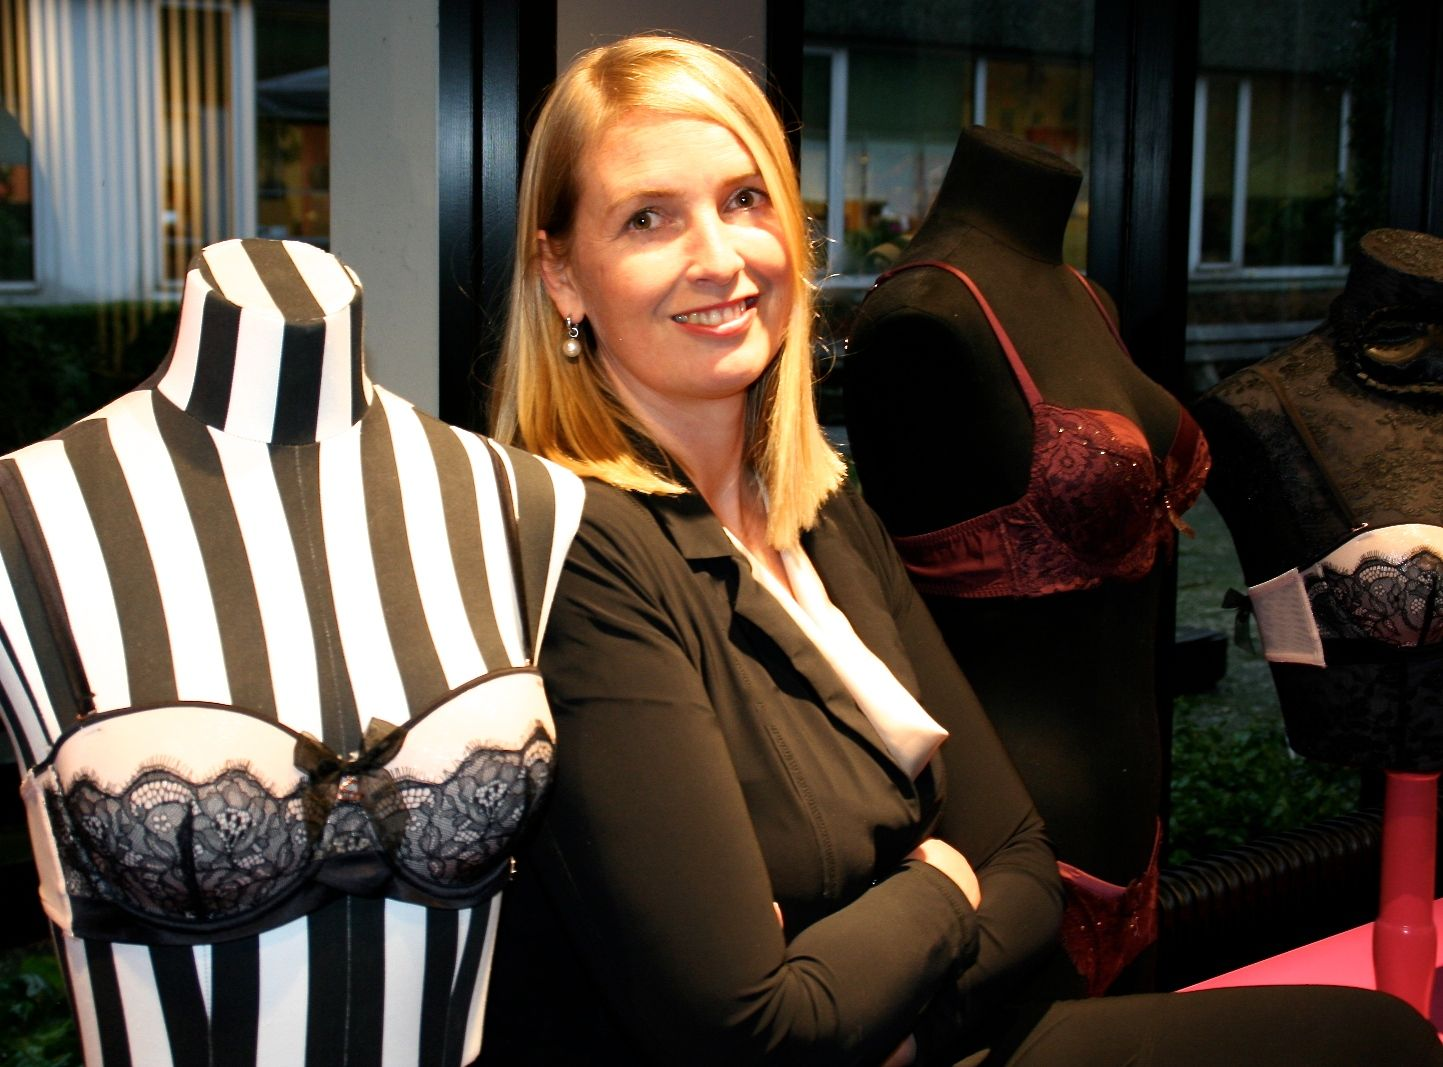 motivatiebrief hunkemoller Home   Careers at Hunkemöller